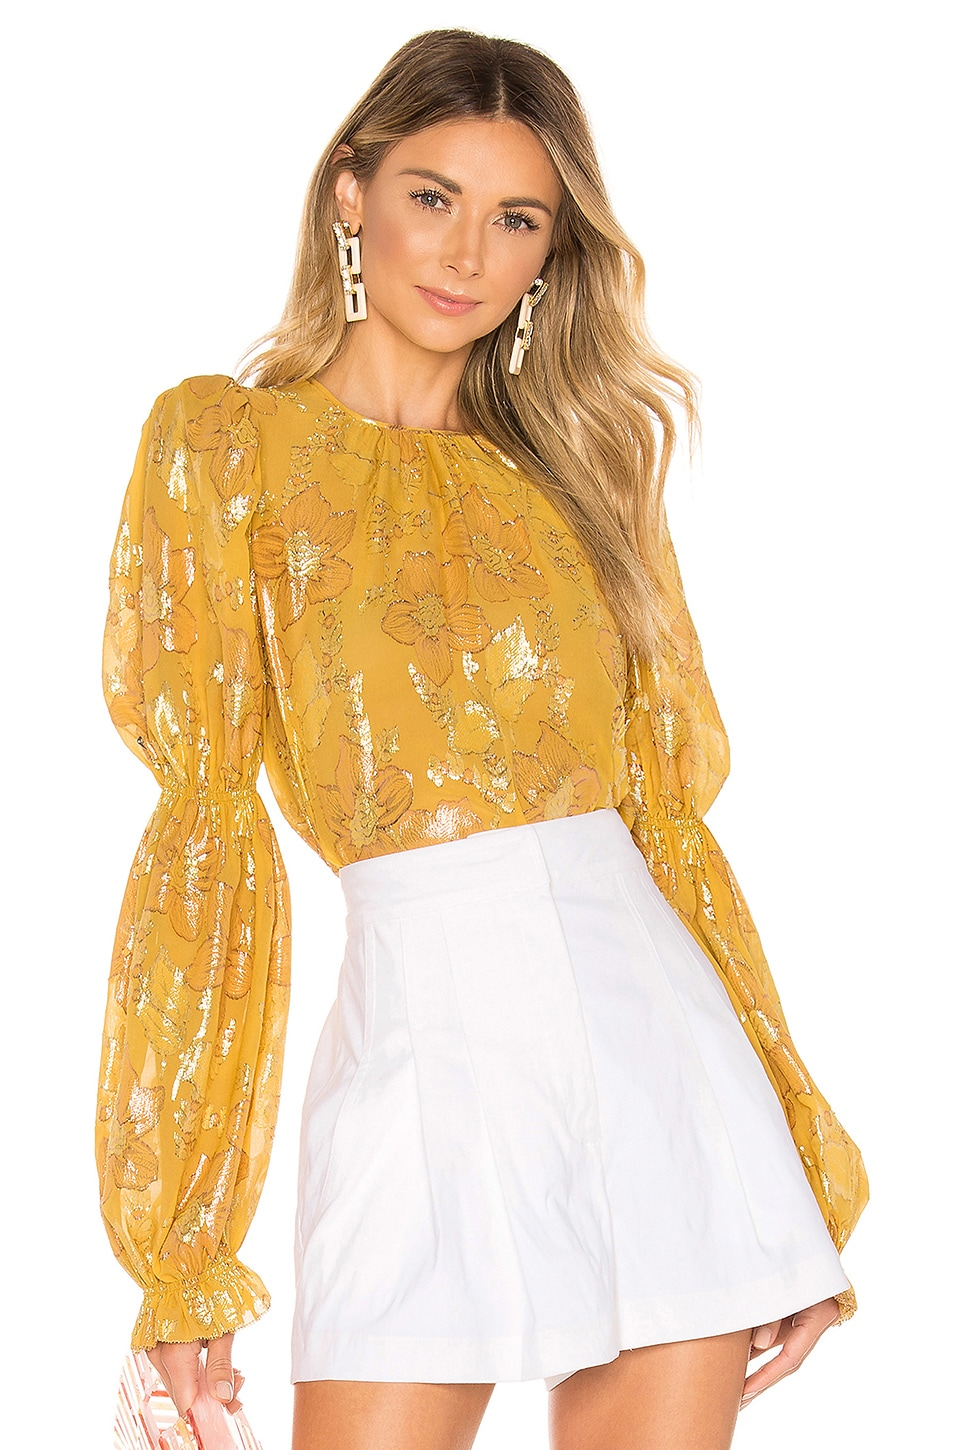 Ulla Johnson Aster Blouse in Citrine